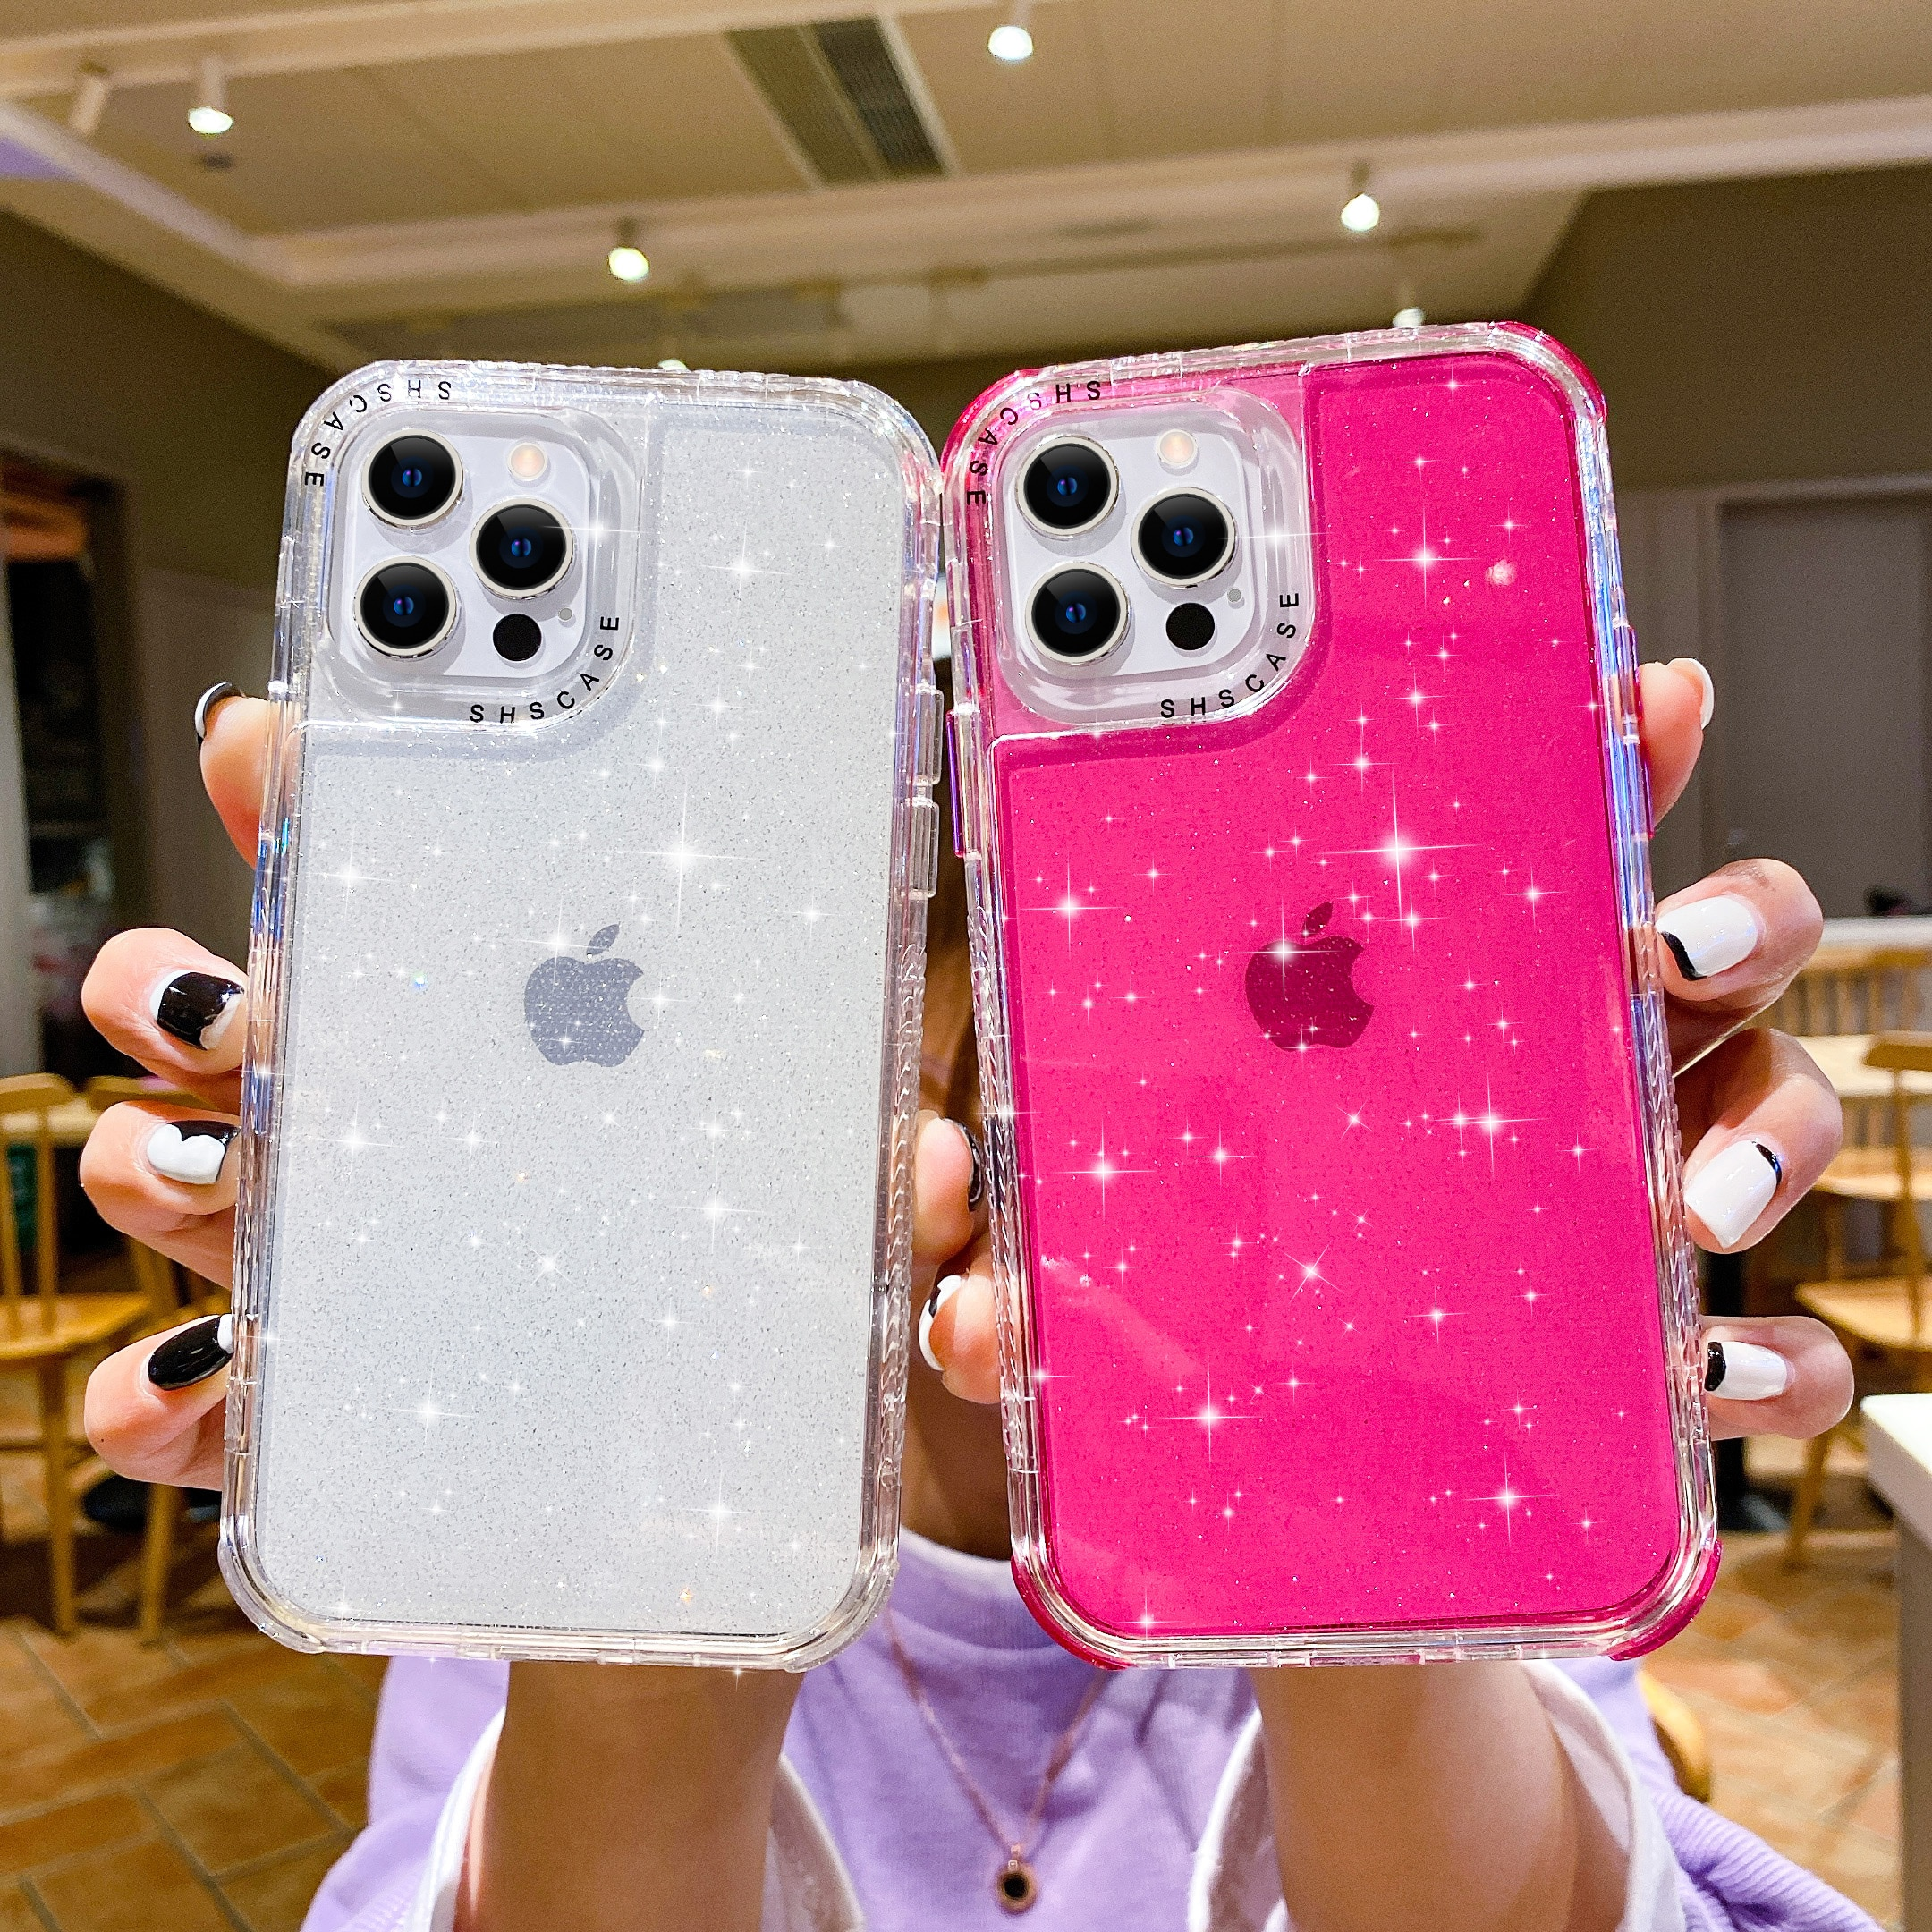 Transparent Glitter Shockproof Bumper Phone Case For iPhone 12 Pro Max Case For 12Mini 11 Pro Max 7/8 Plus Xs Max Xr Back Case